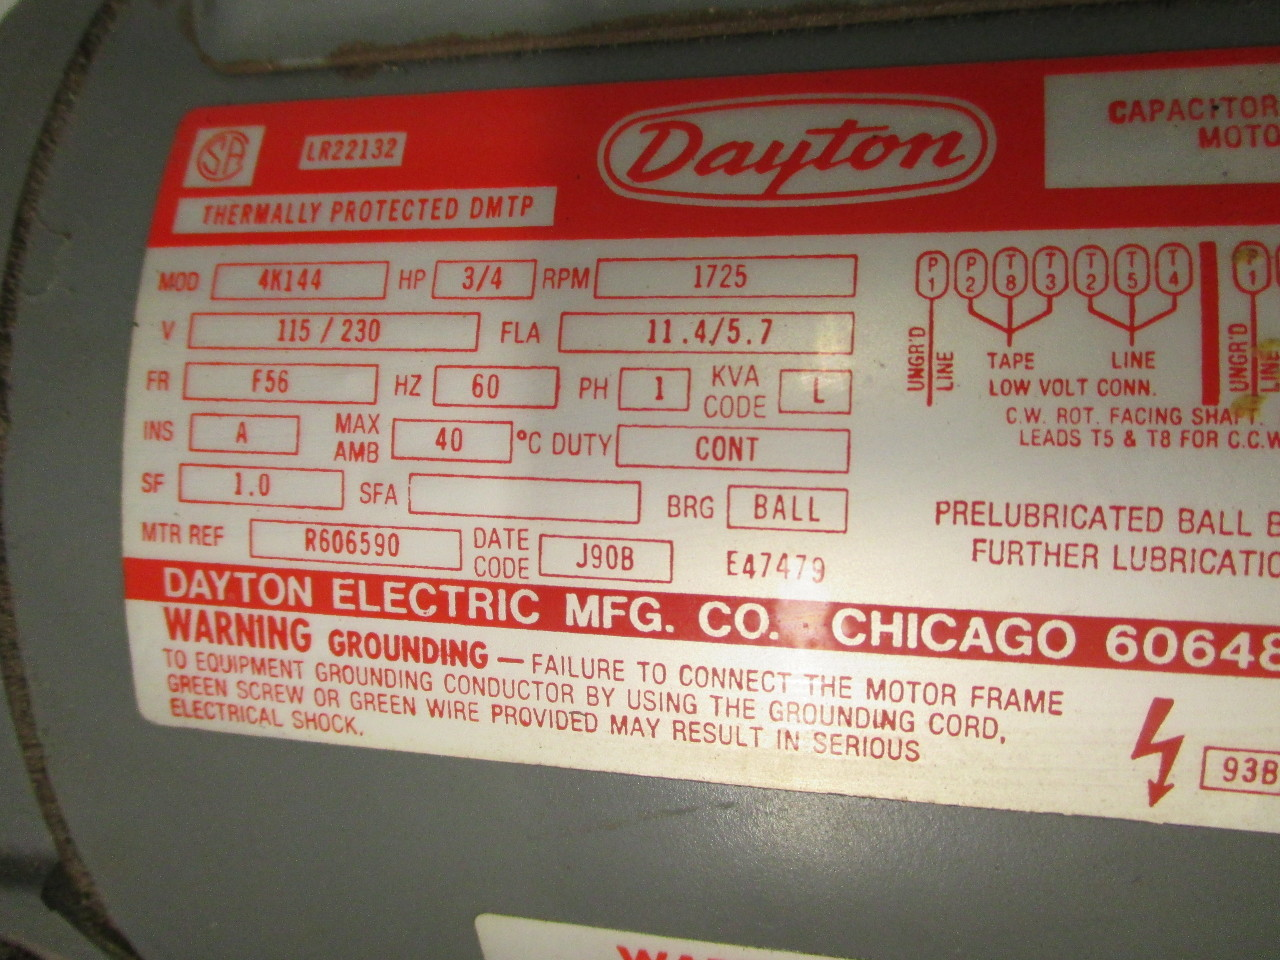 Chicago Drill Press Wiring Diagram Controls On Maintenance